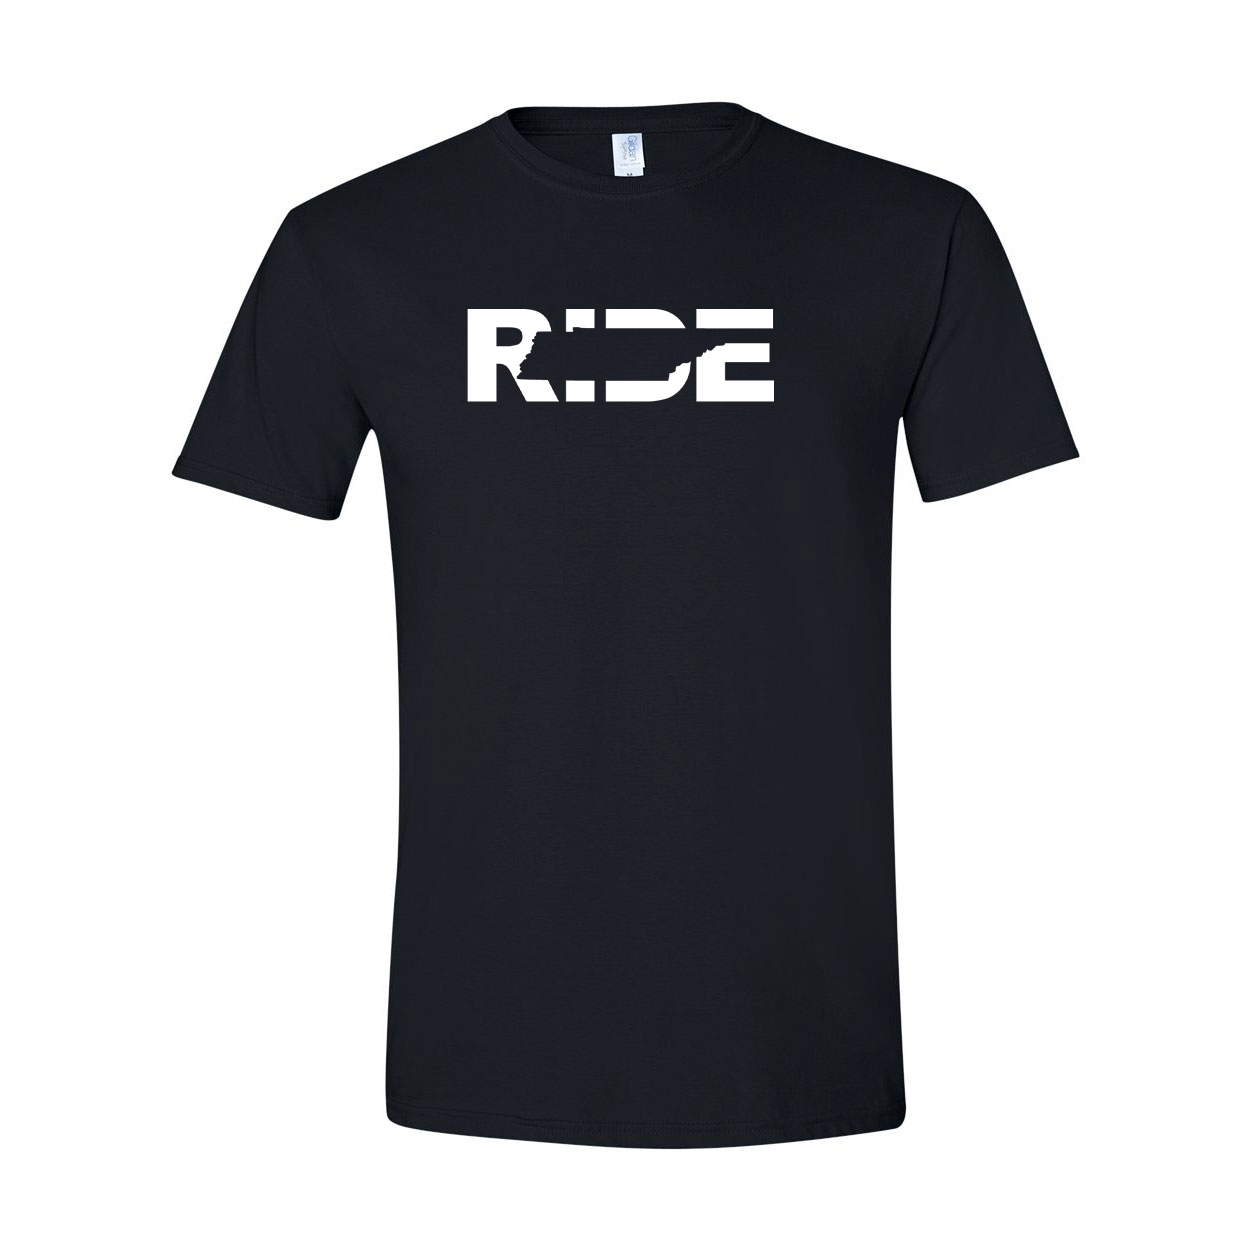 Ride Tennessee Classic T-Shirt Black (White Logo)